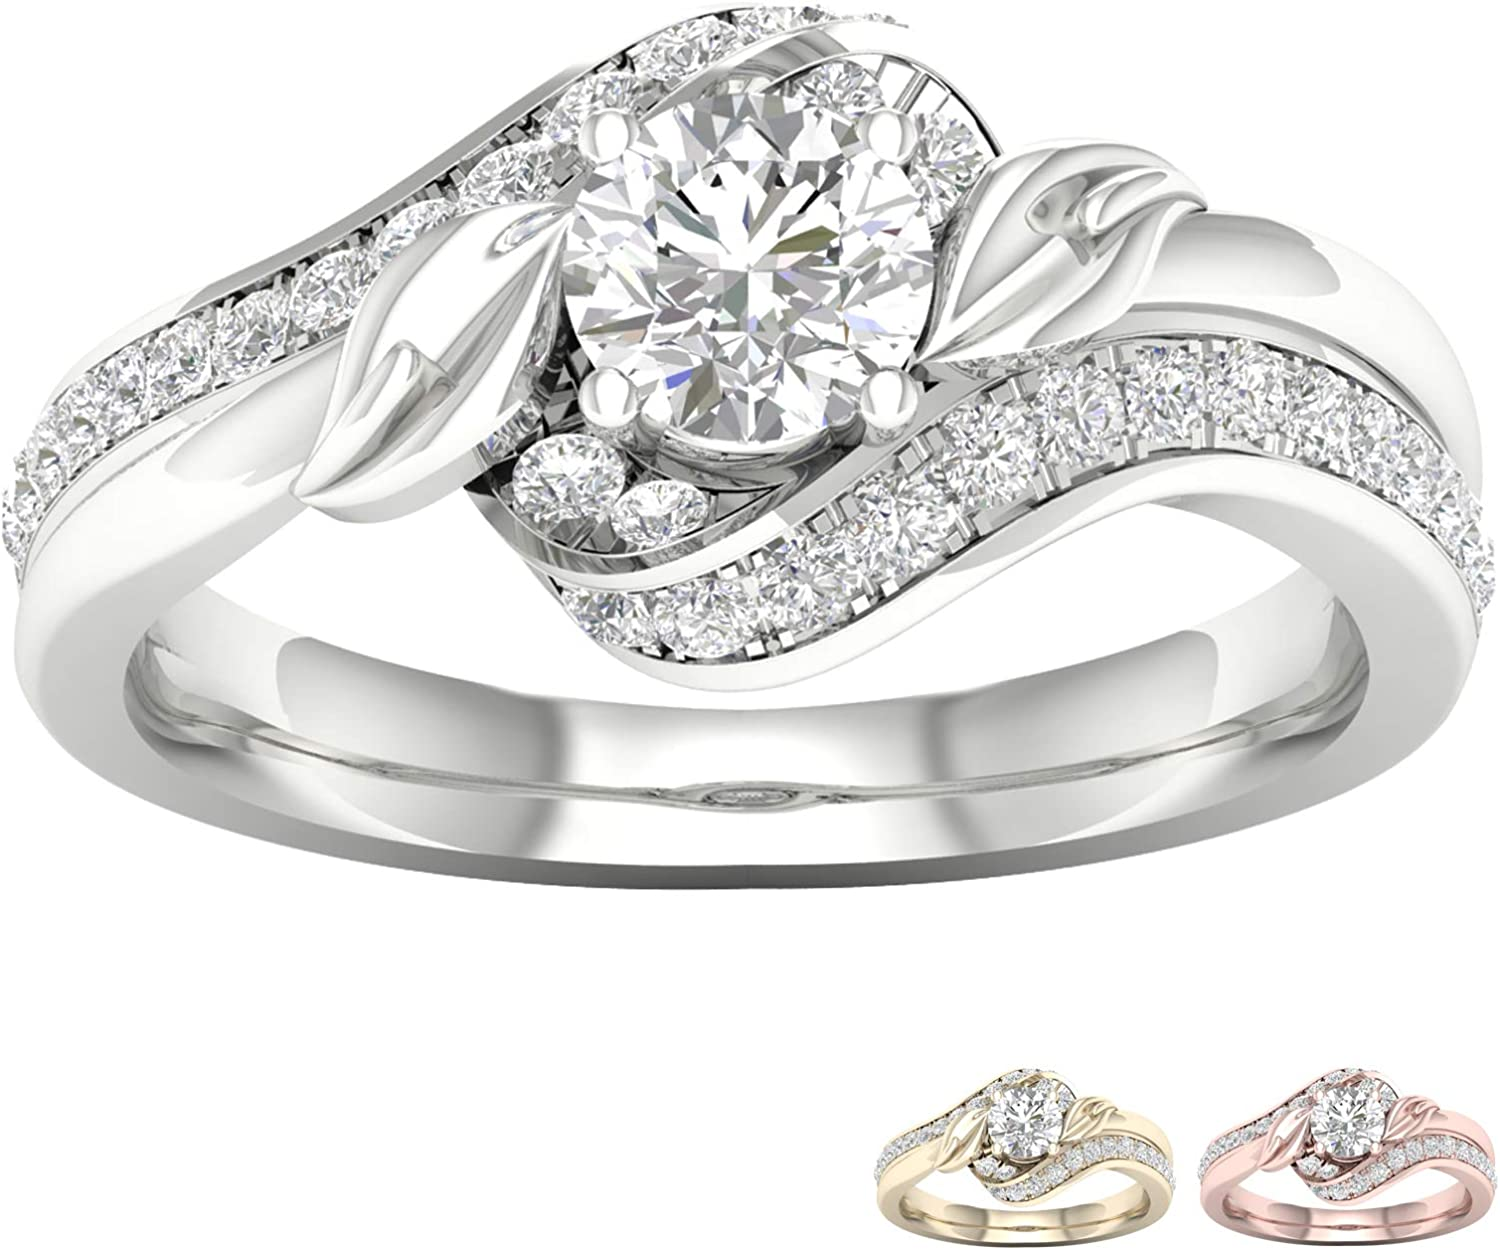 10k or 14k White Gold Promise Ring Round Center Diamond and Accents